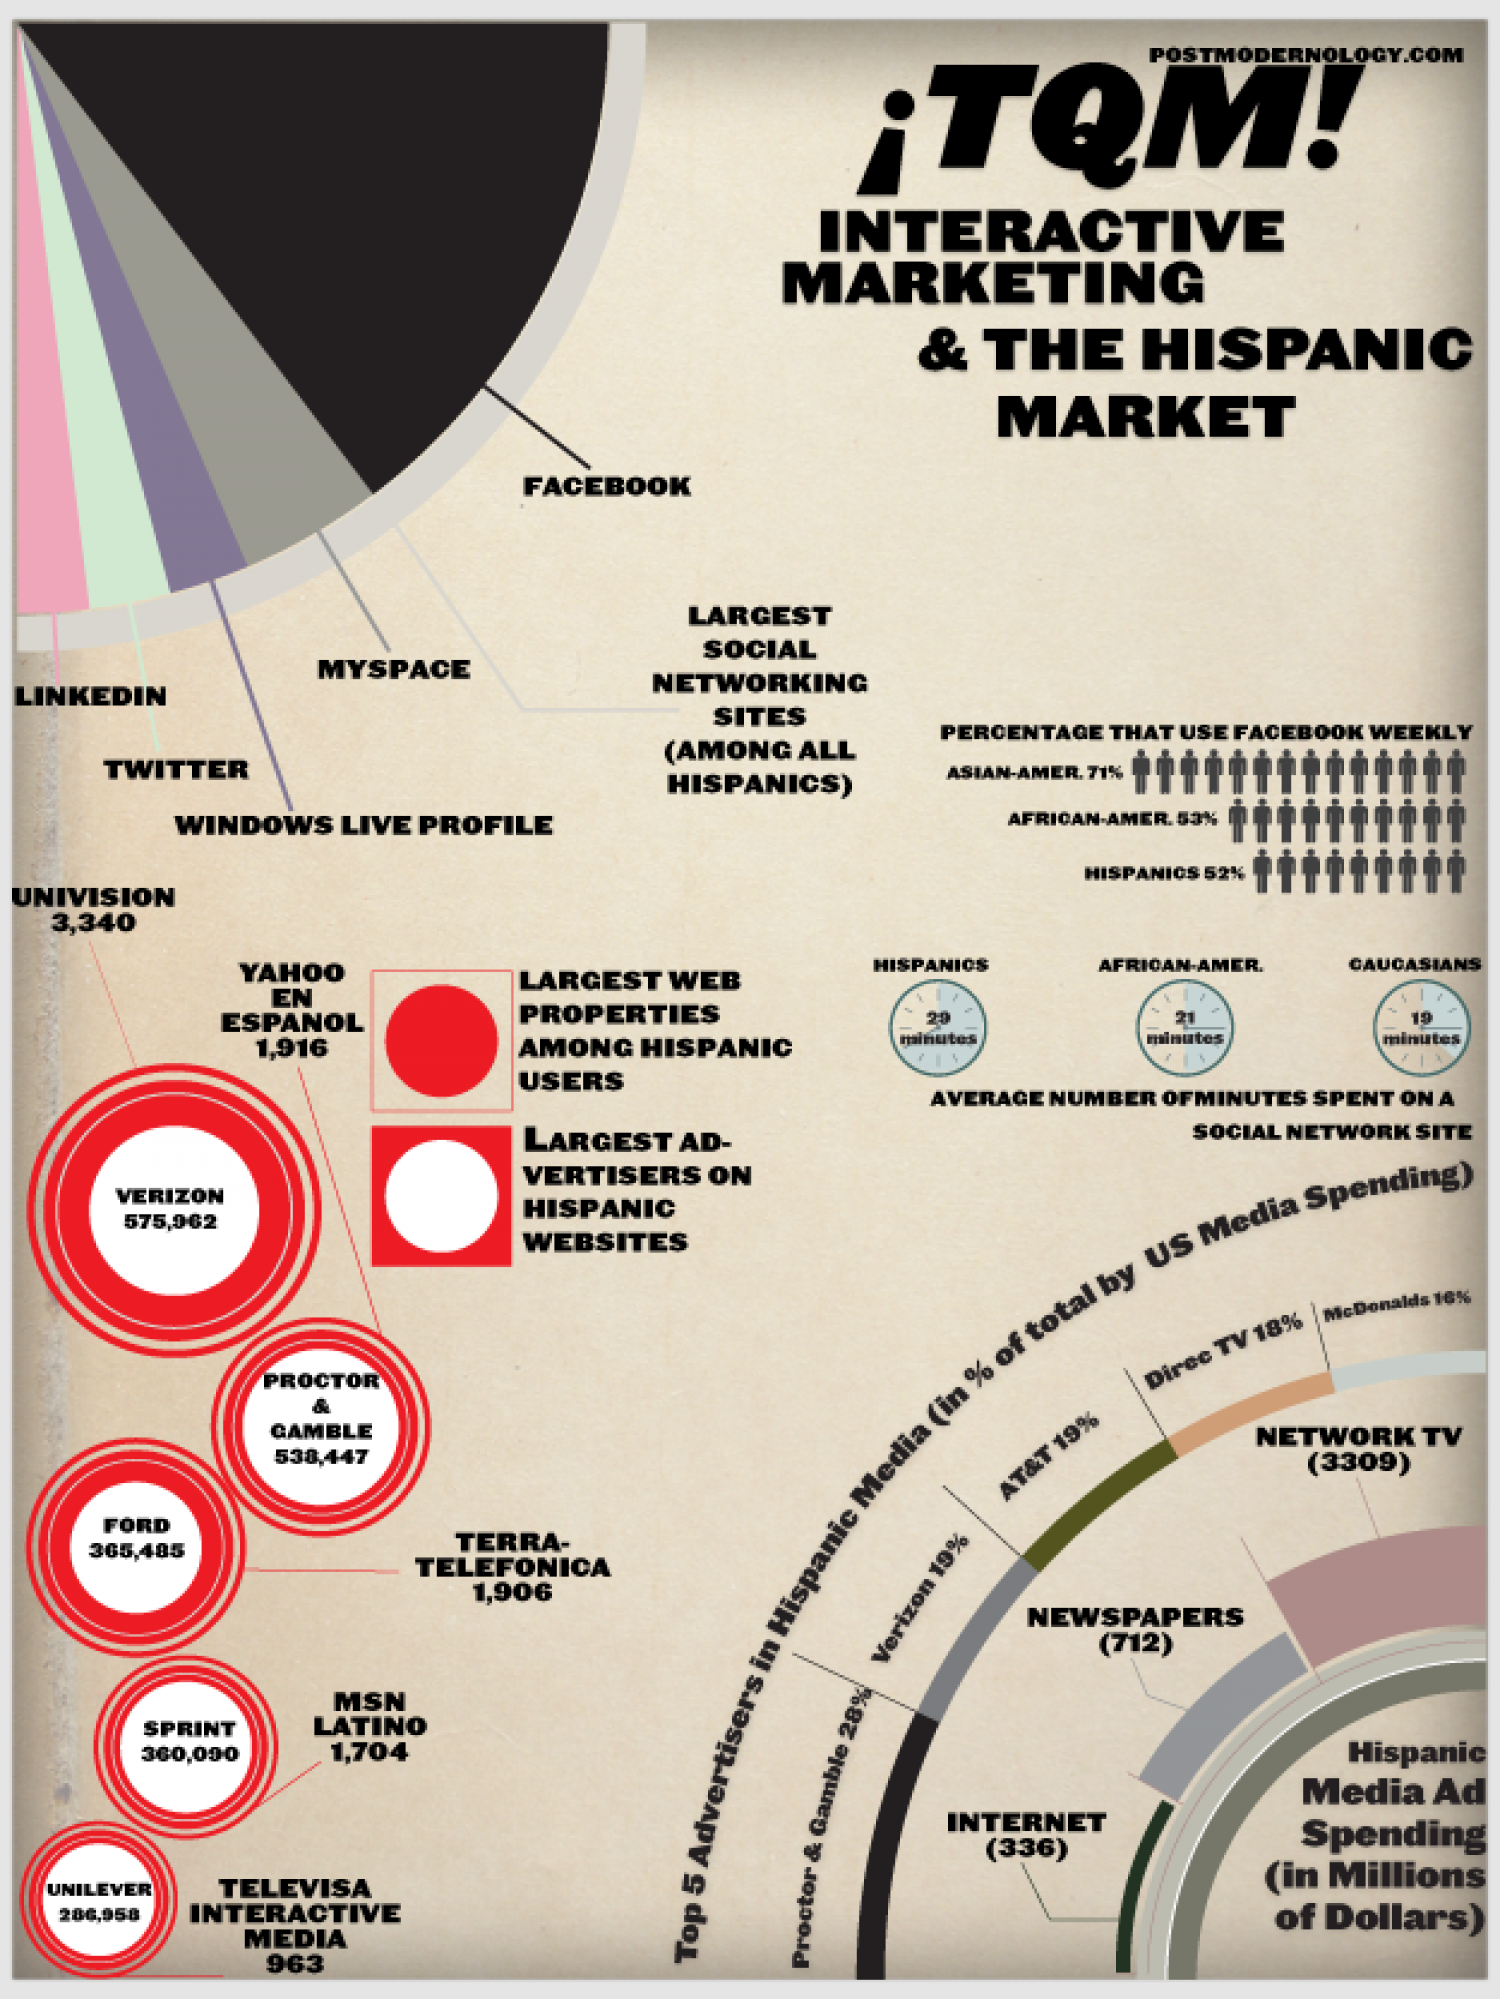 TQM! Interactive Marketing & The Hispanic Market Infographic